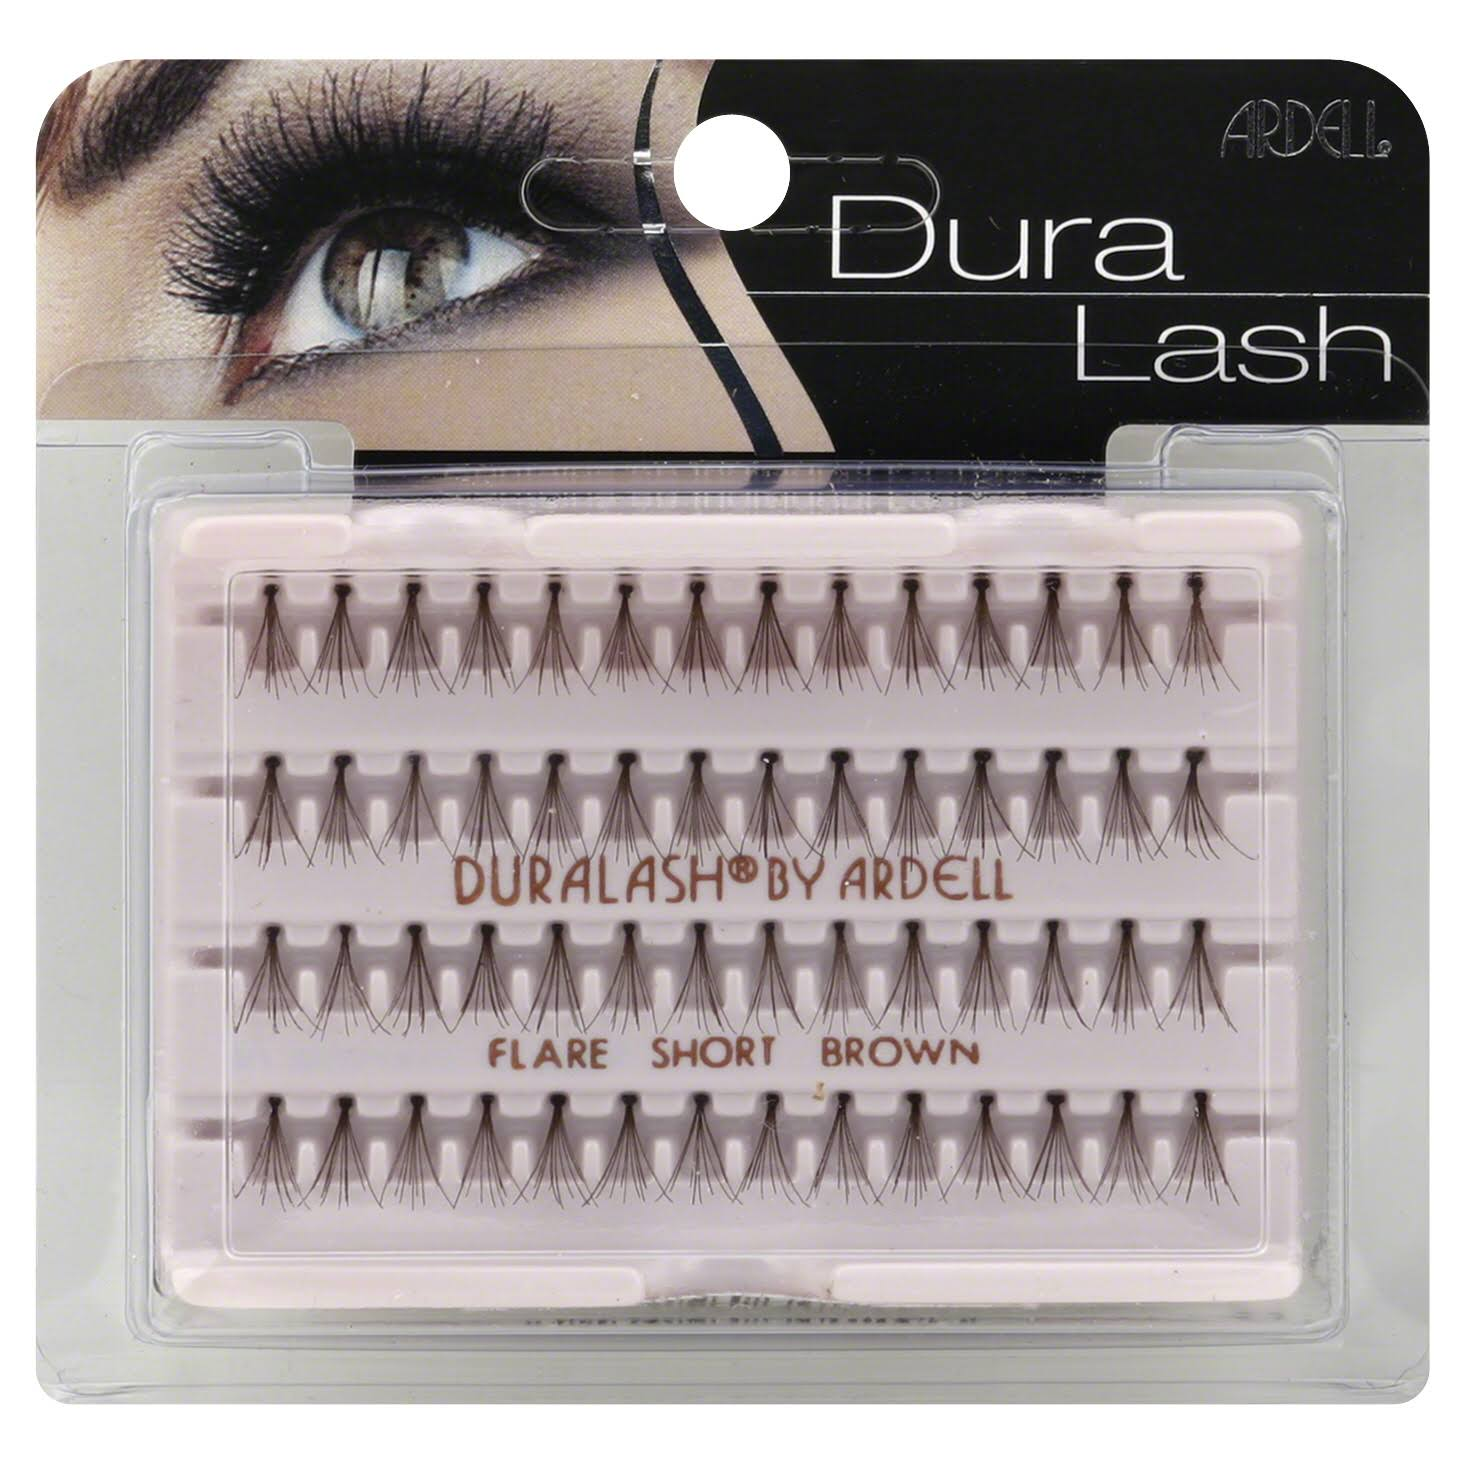 Ardell DuraLash Lashes - Flare Short Brown